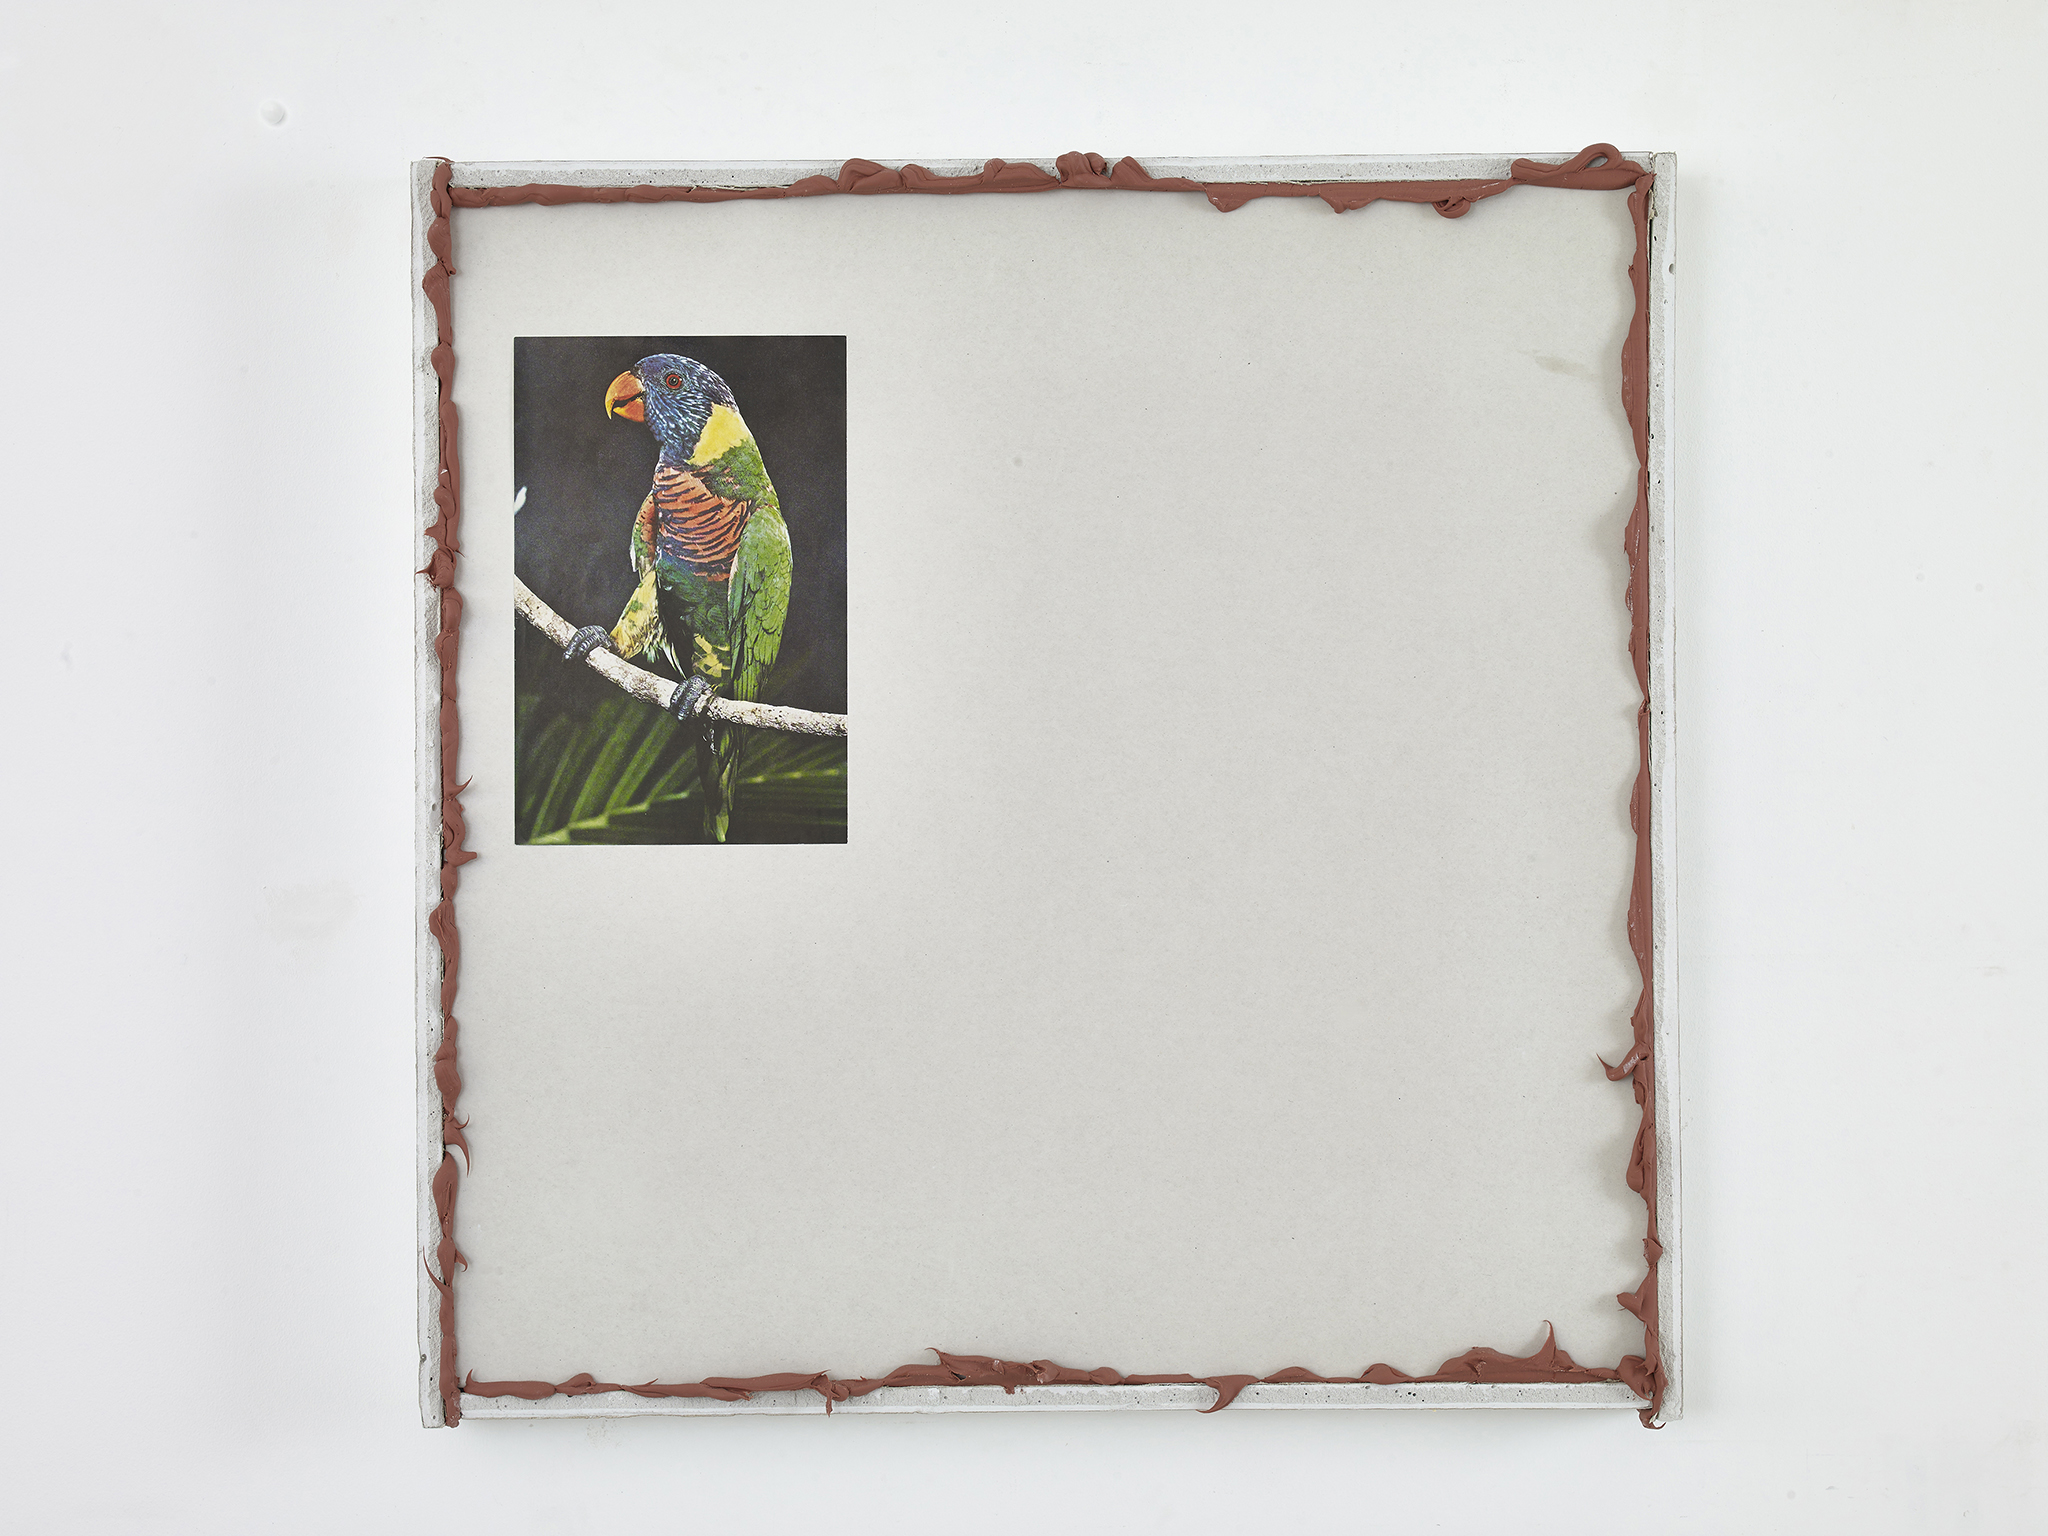 Untitled(Parrot)2015